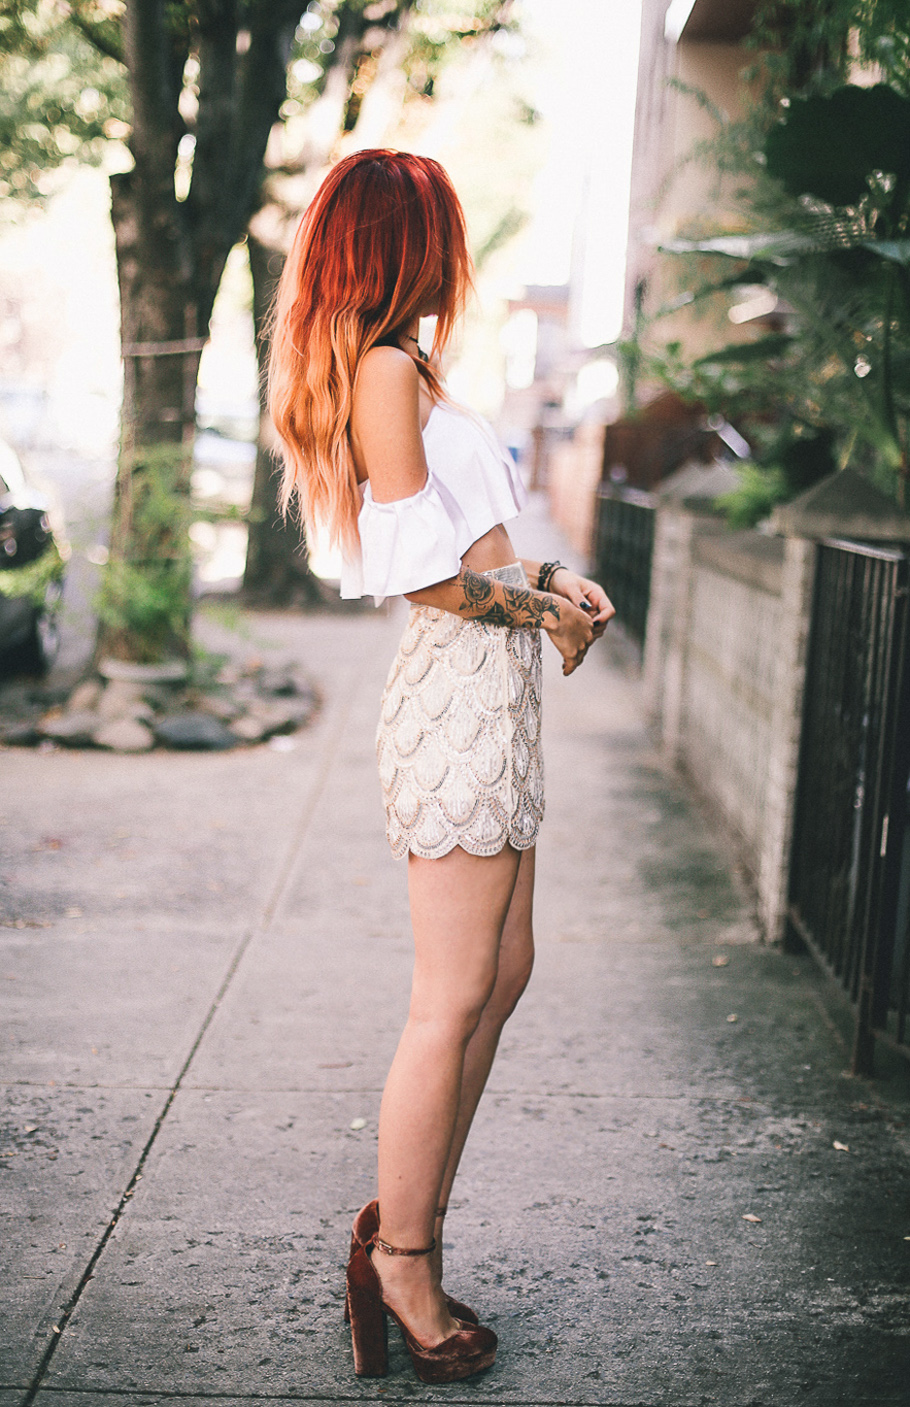 Le Happy wearing Kendall and Kylie top and sequined skirt